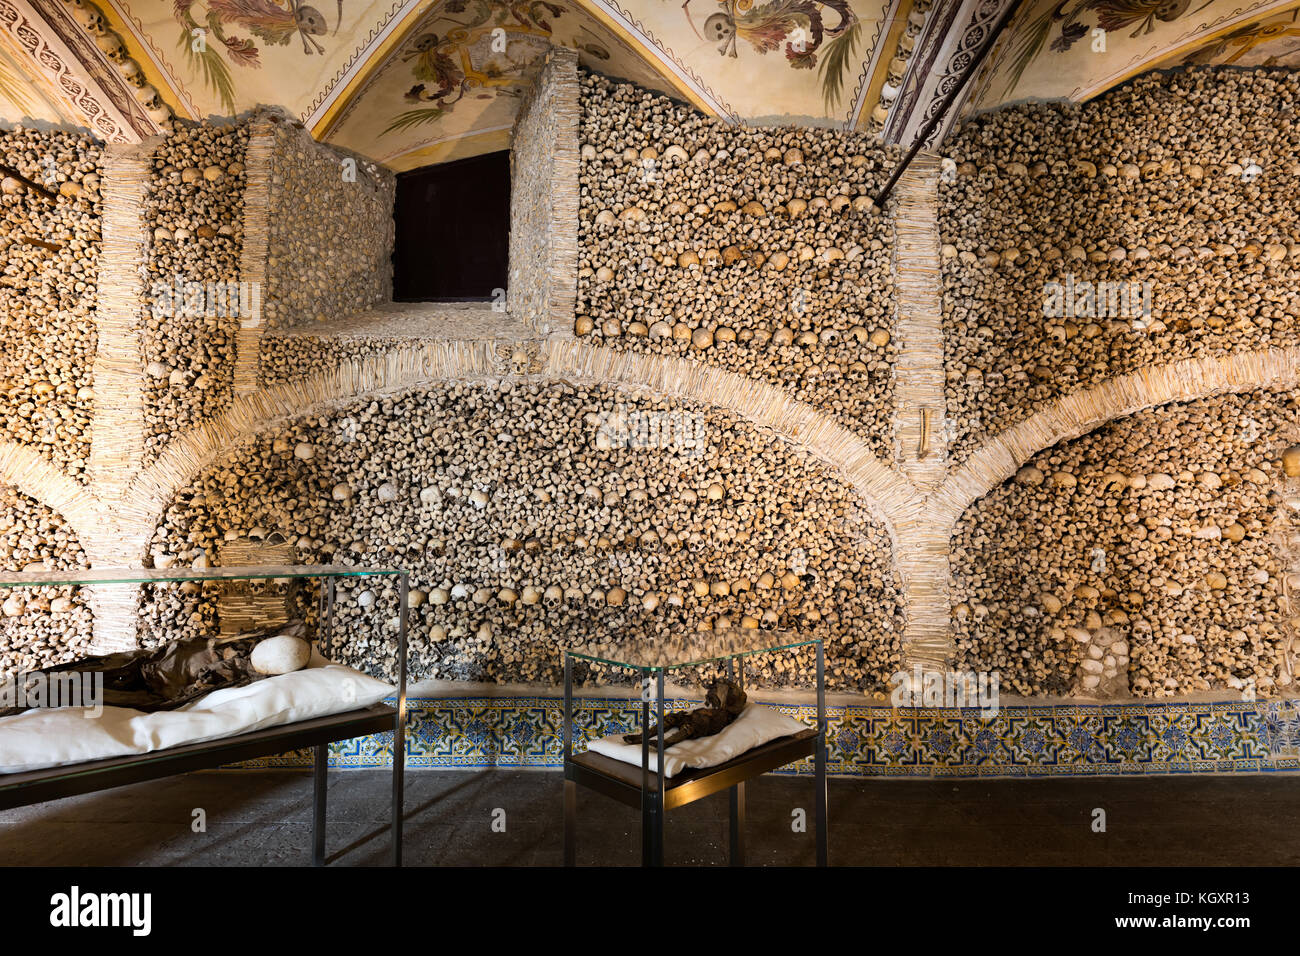 Capela dos Ossos was built in the 16th century by a Franciscan monk to prod his fellow brothers into contemplation - Stock Image